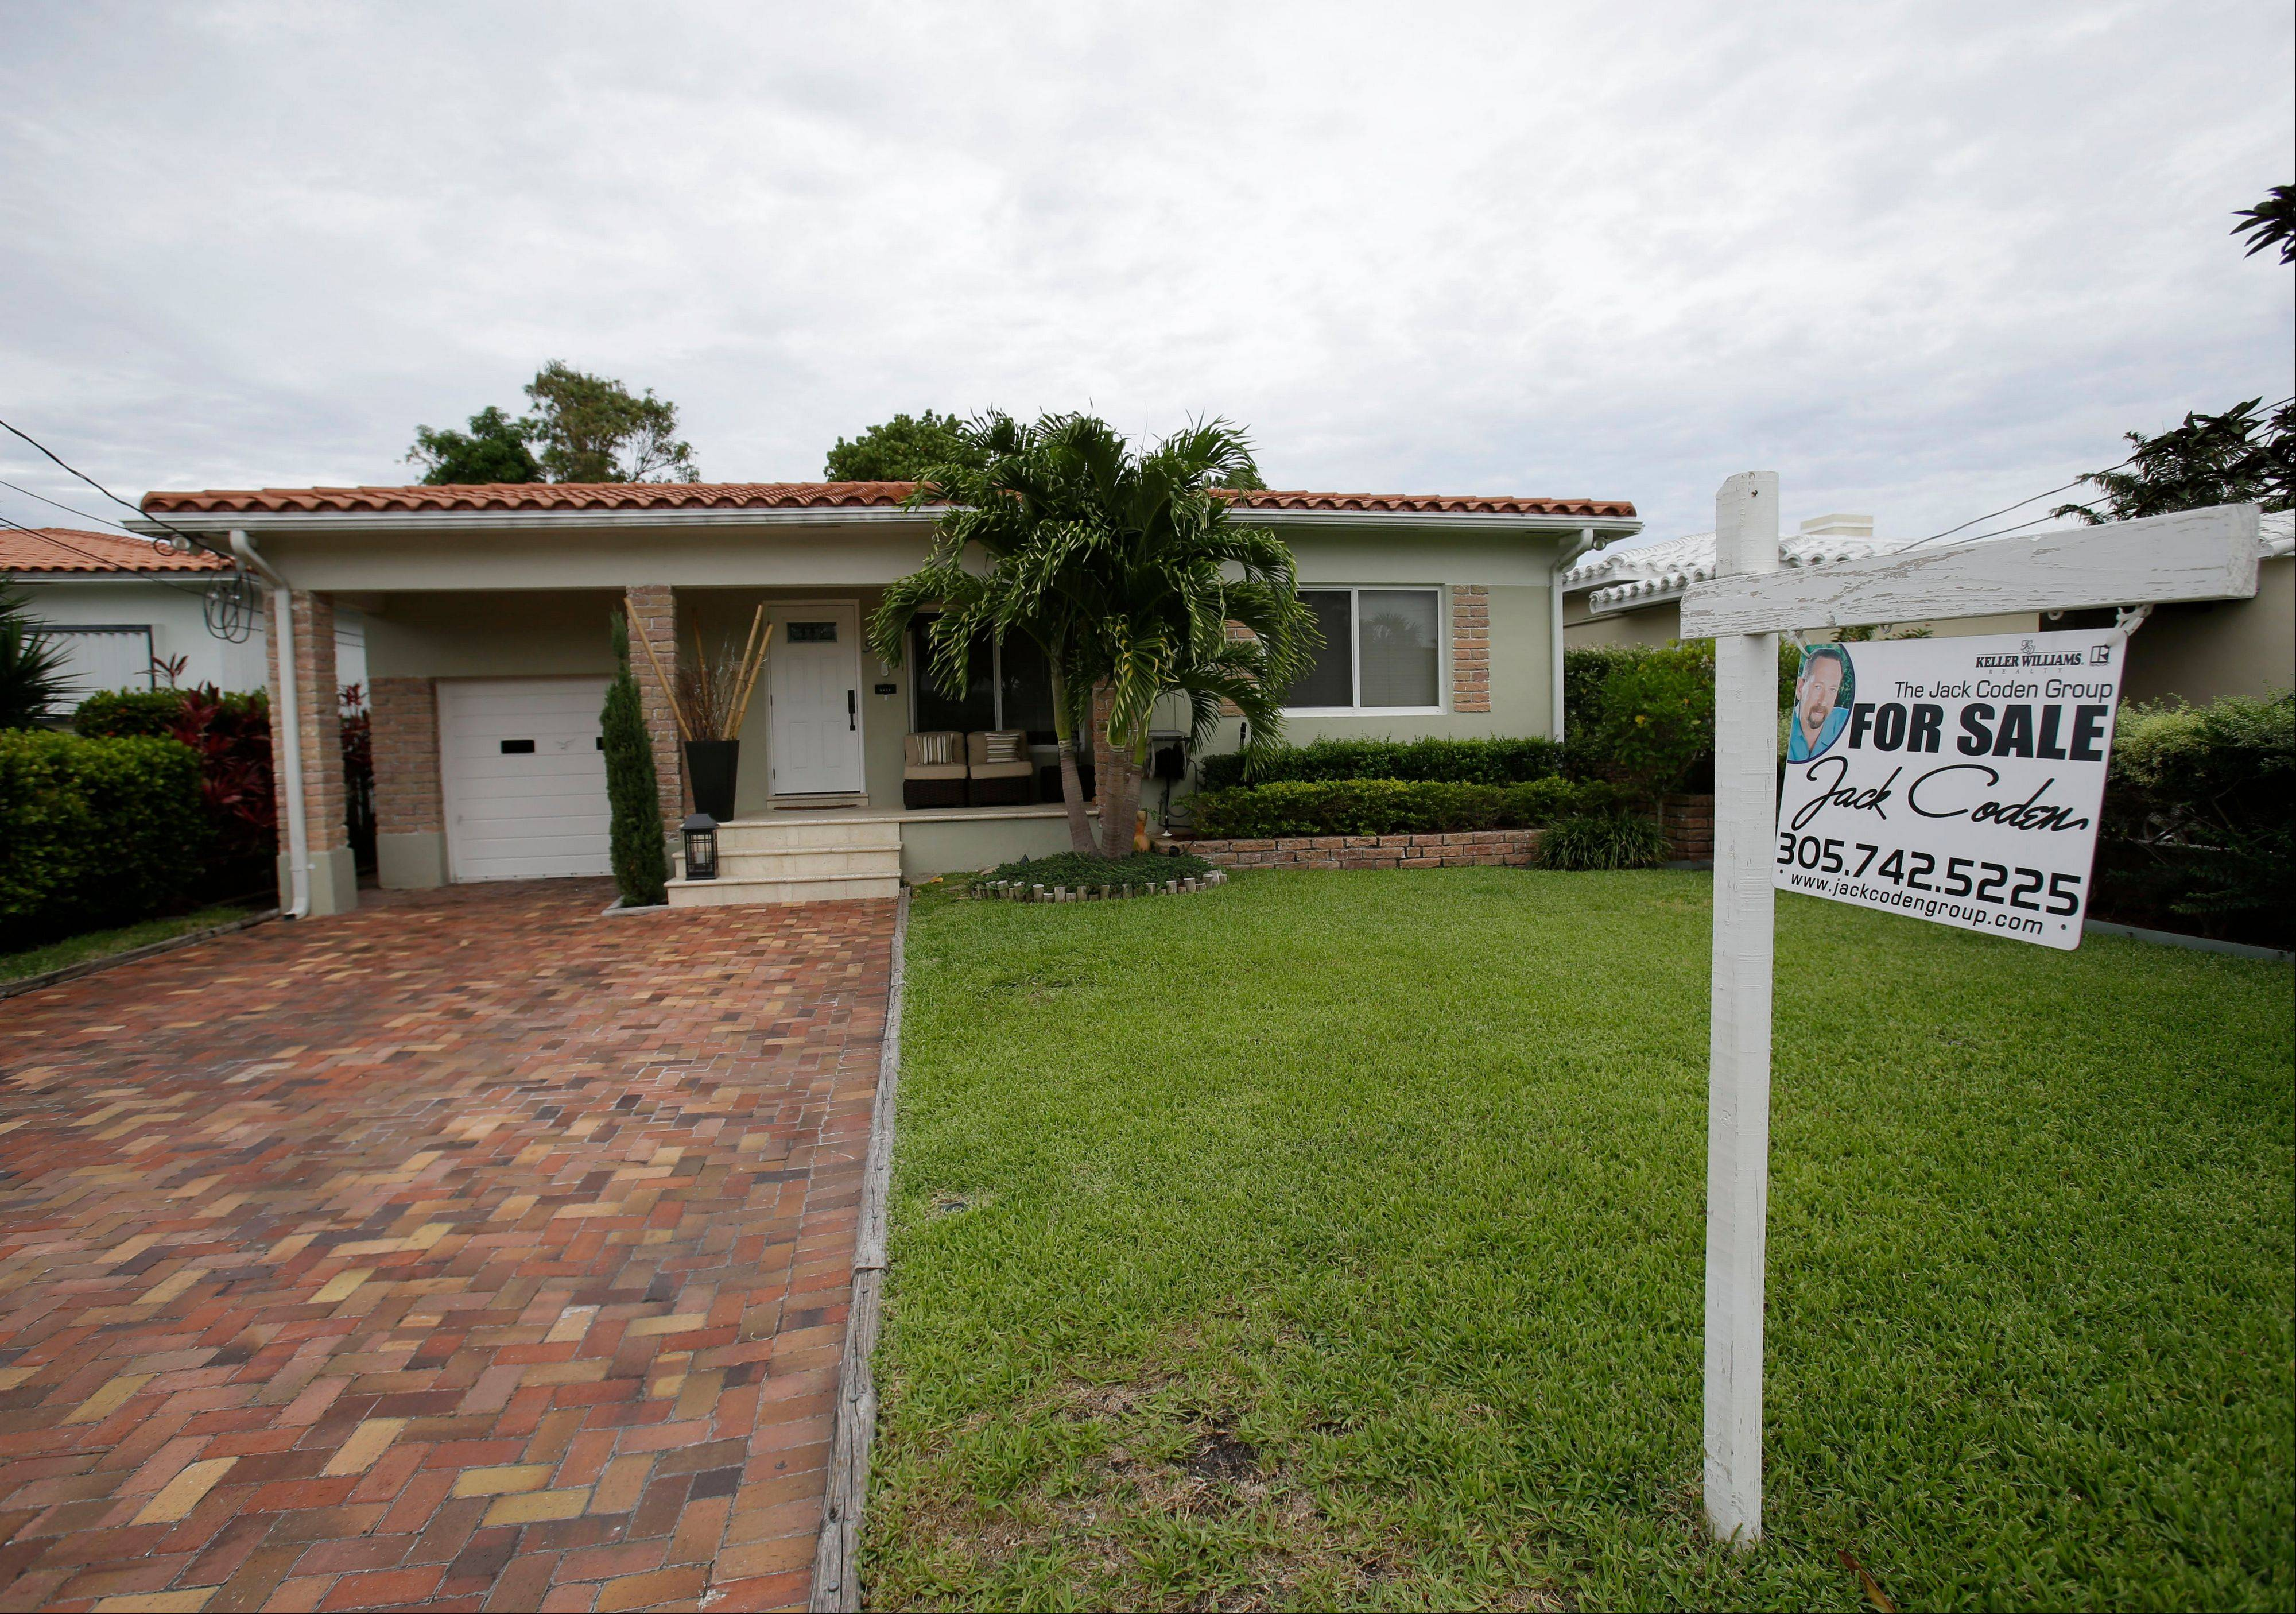 U.S. home prices jumped 12.2 percent in May from a year ago, the most in seven years. The increase suggests the housing recovery is strengthening.